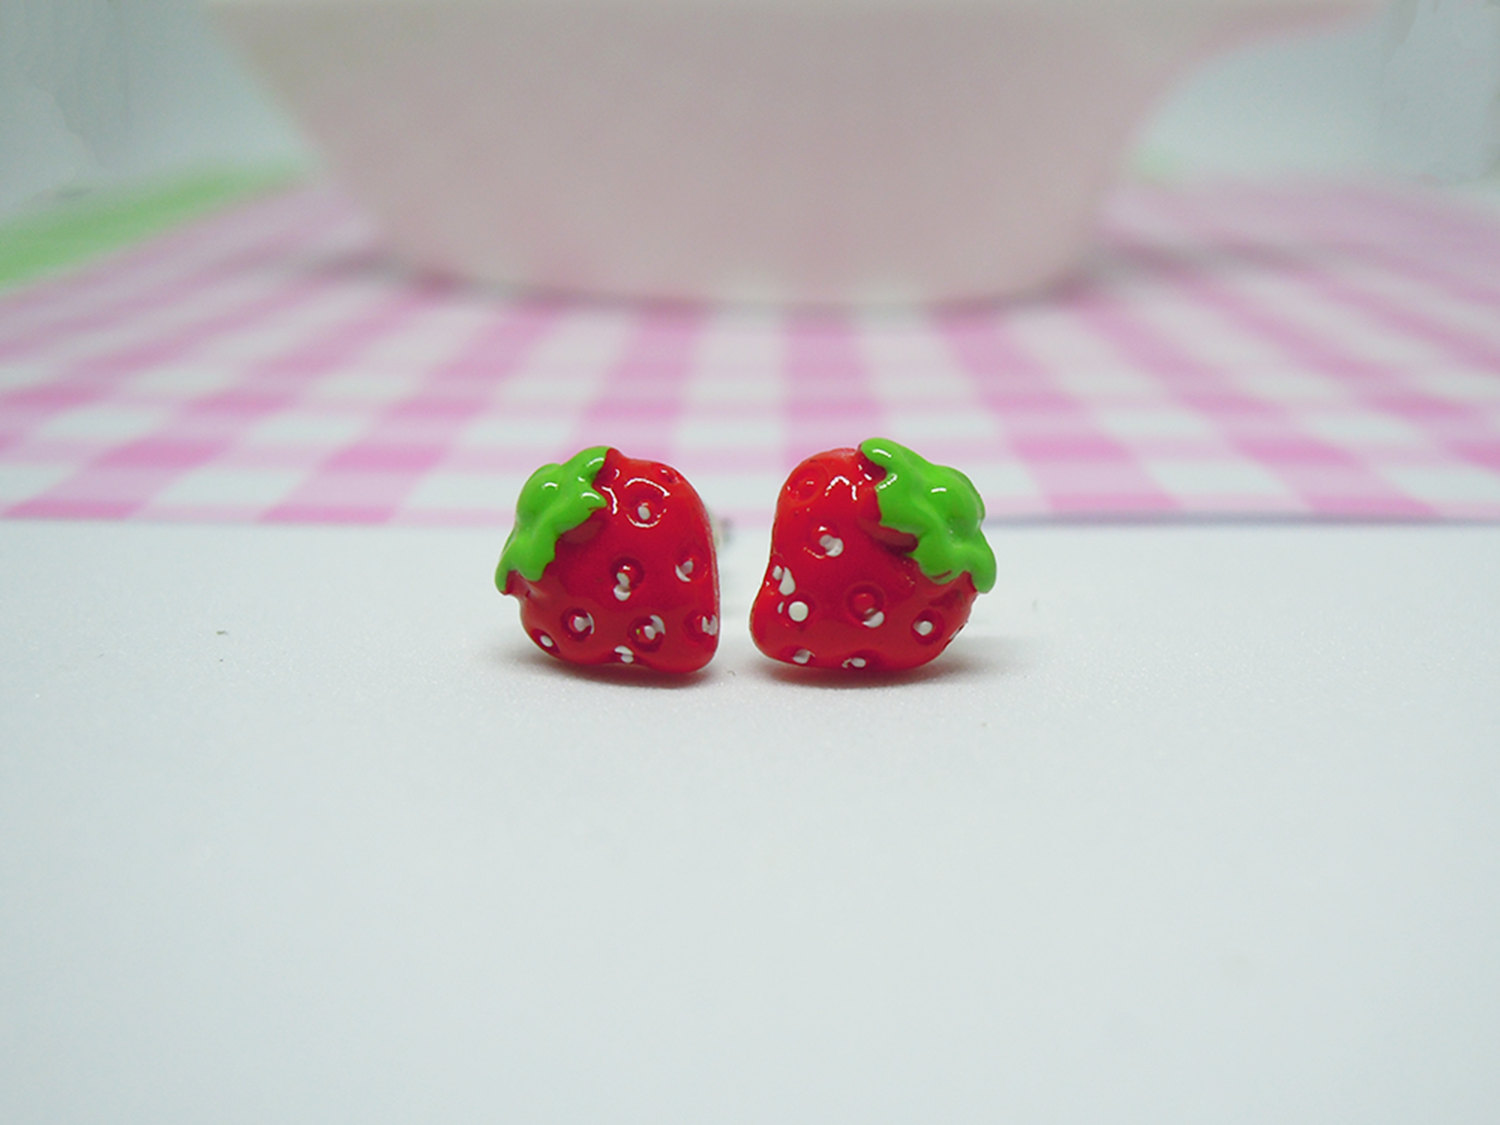 Miniature Cute Strawberry Polymer Clay Food Stud Earrings